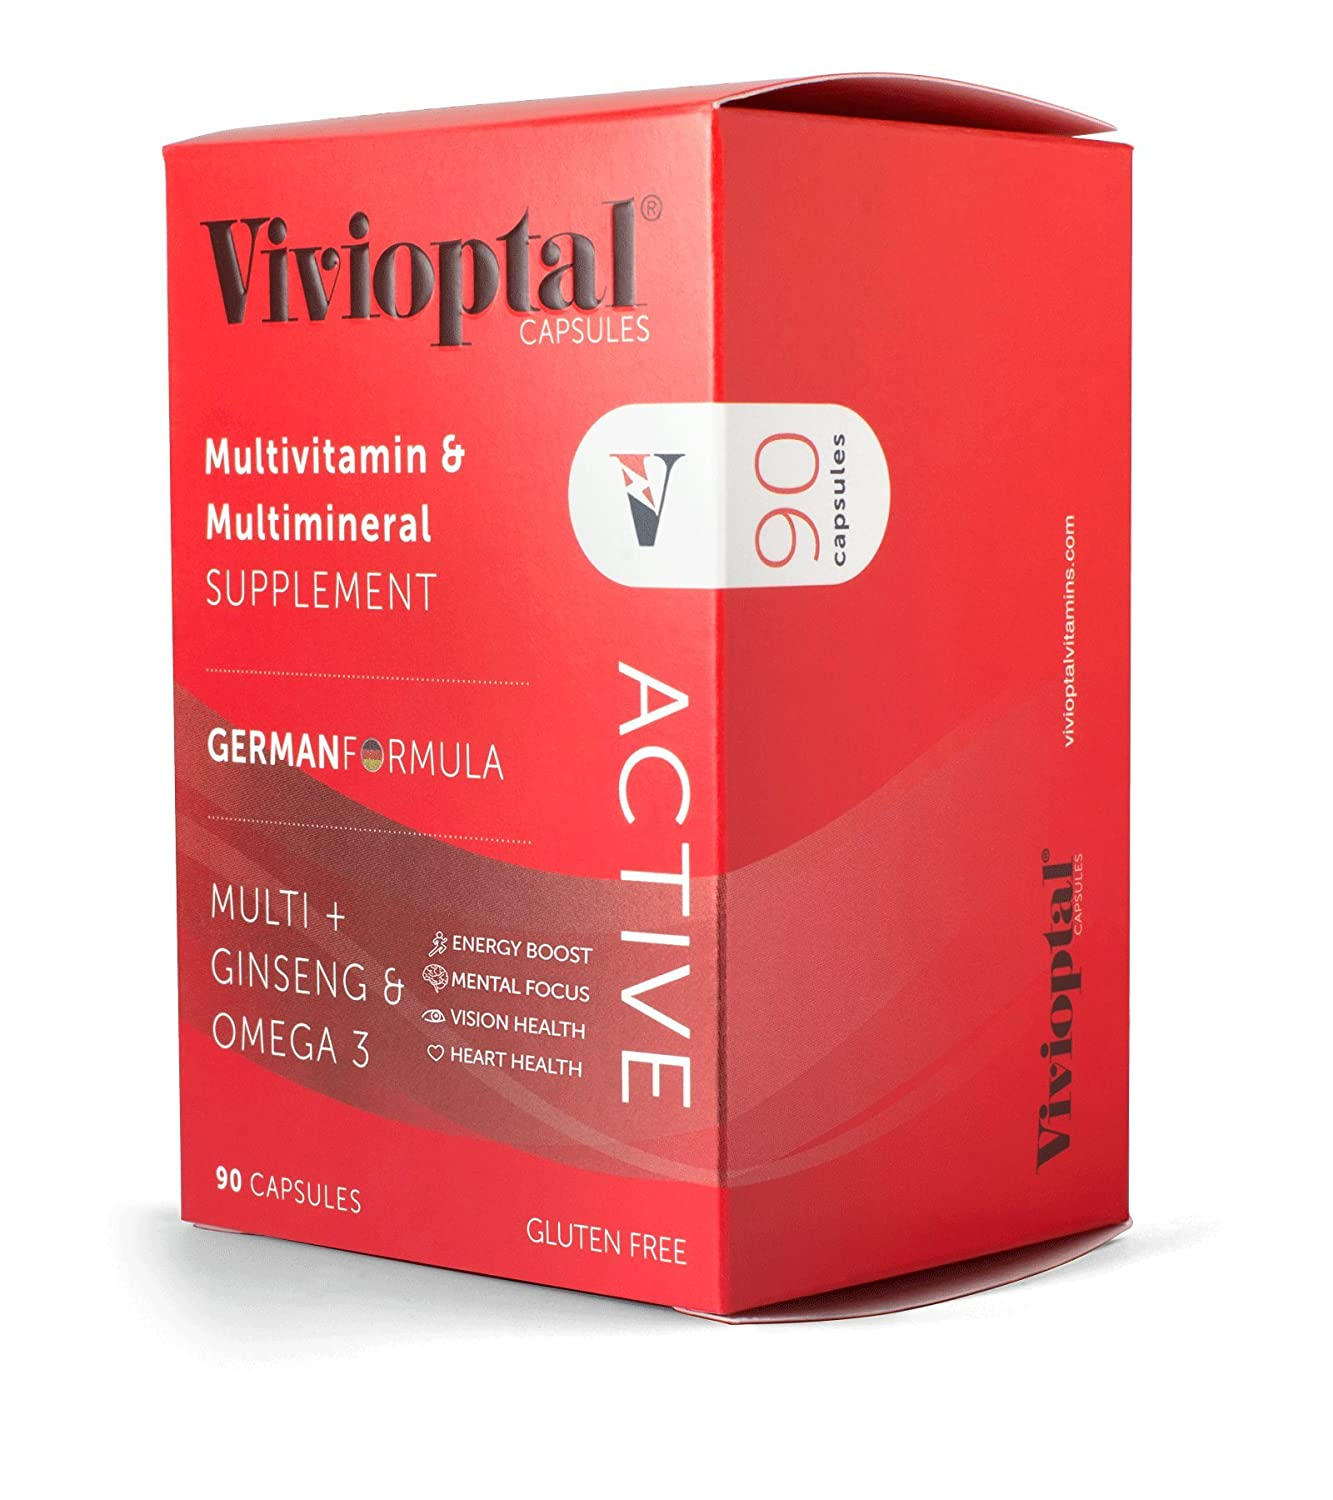 ViVivioptal Active 90 Capsules – Multivitamin Multimineral Supplement – Ginseng Omega 3